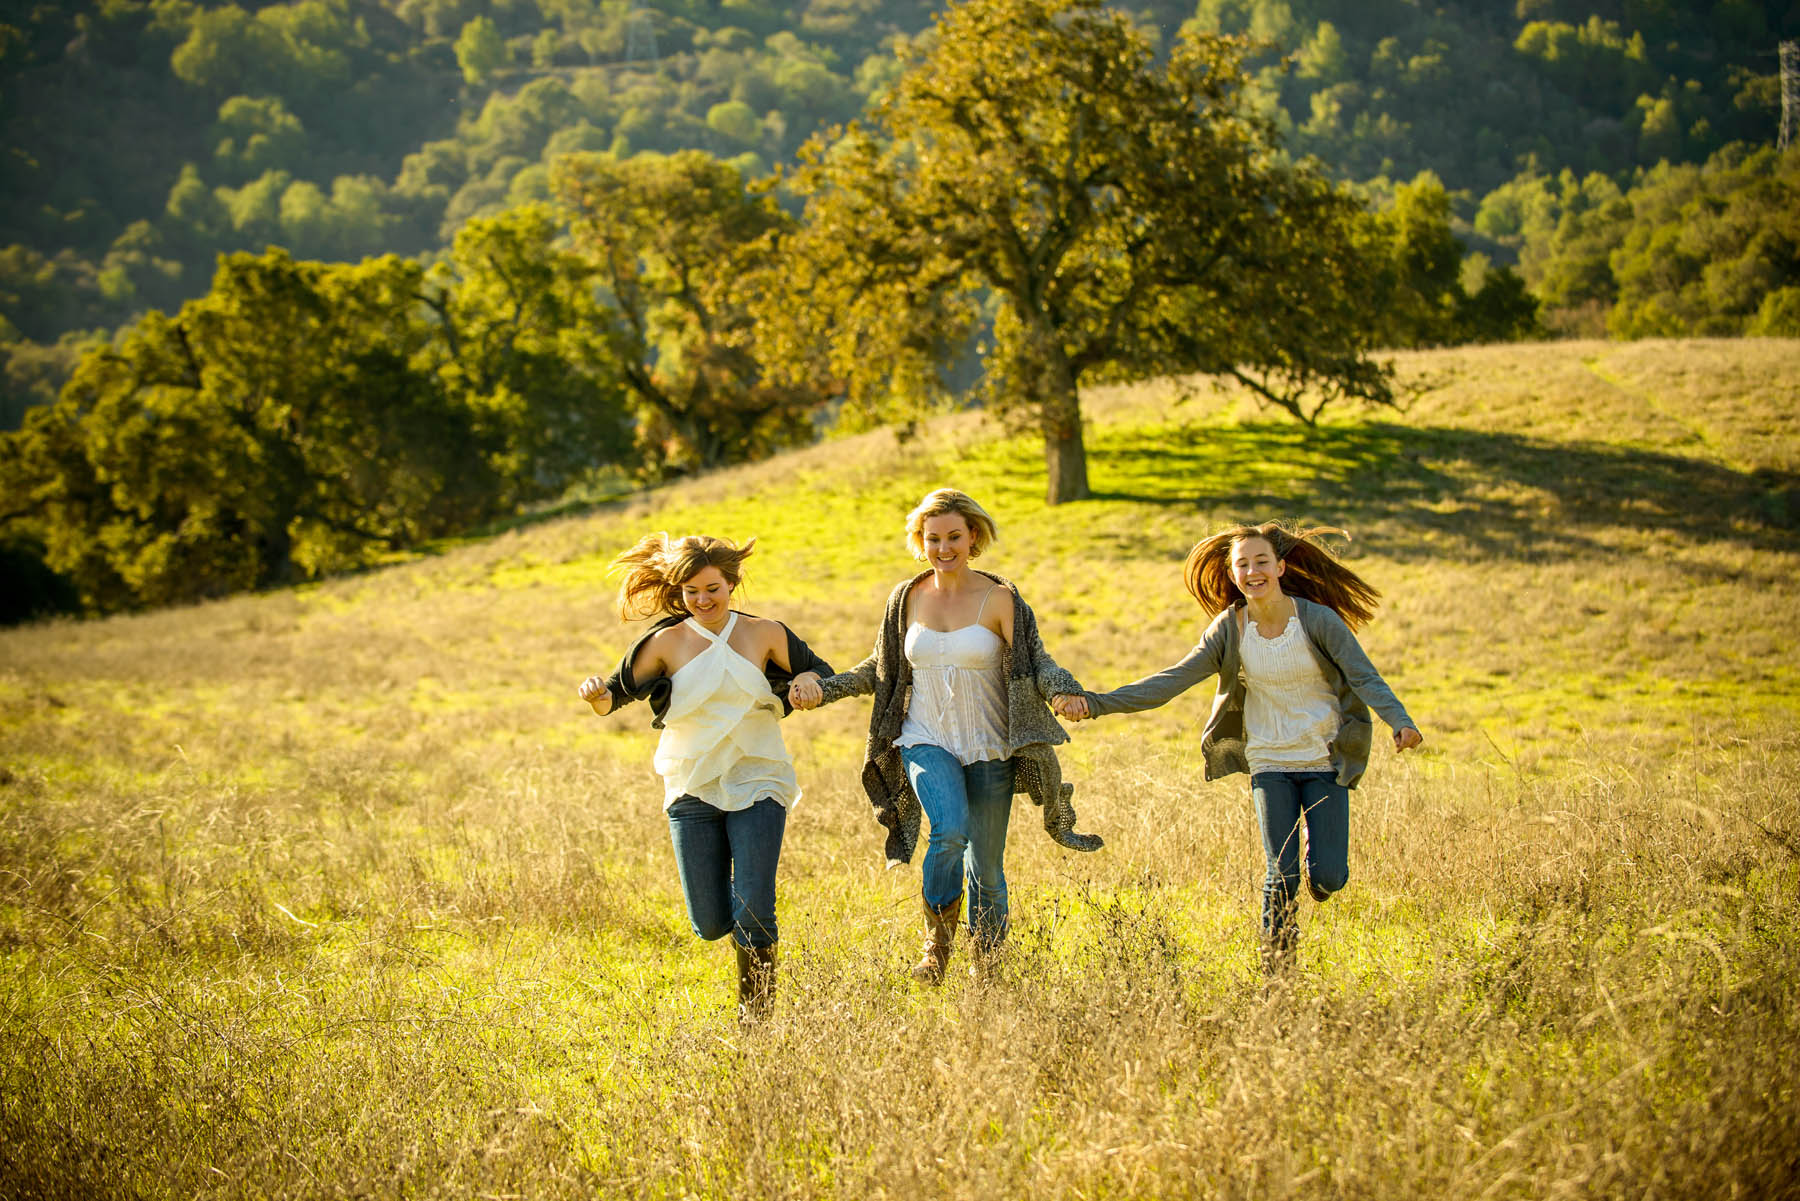 4418_d800_Allegra_Phoenix_Maren_Sisters_Rancho_San_Antonio_Open_Space_Preserve_Cupertino_Family_Photography.jpg